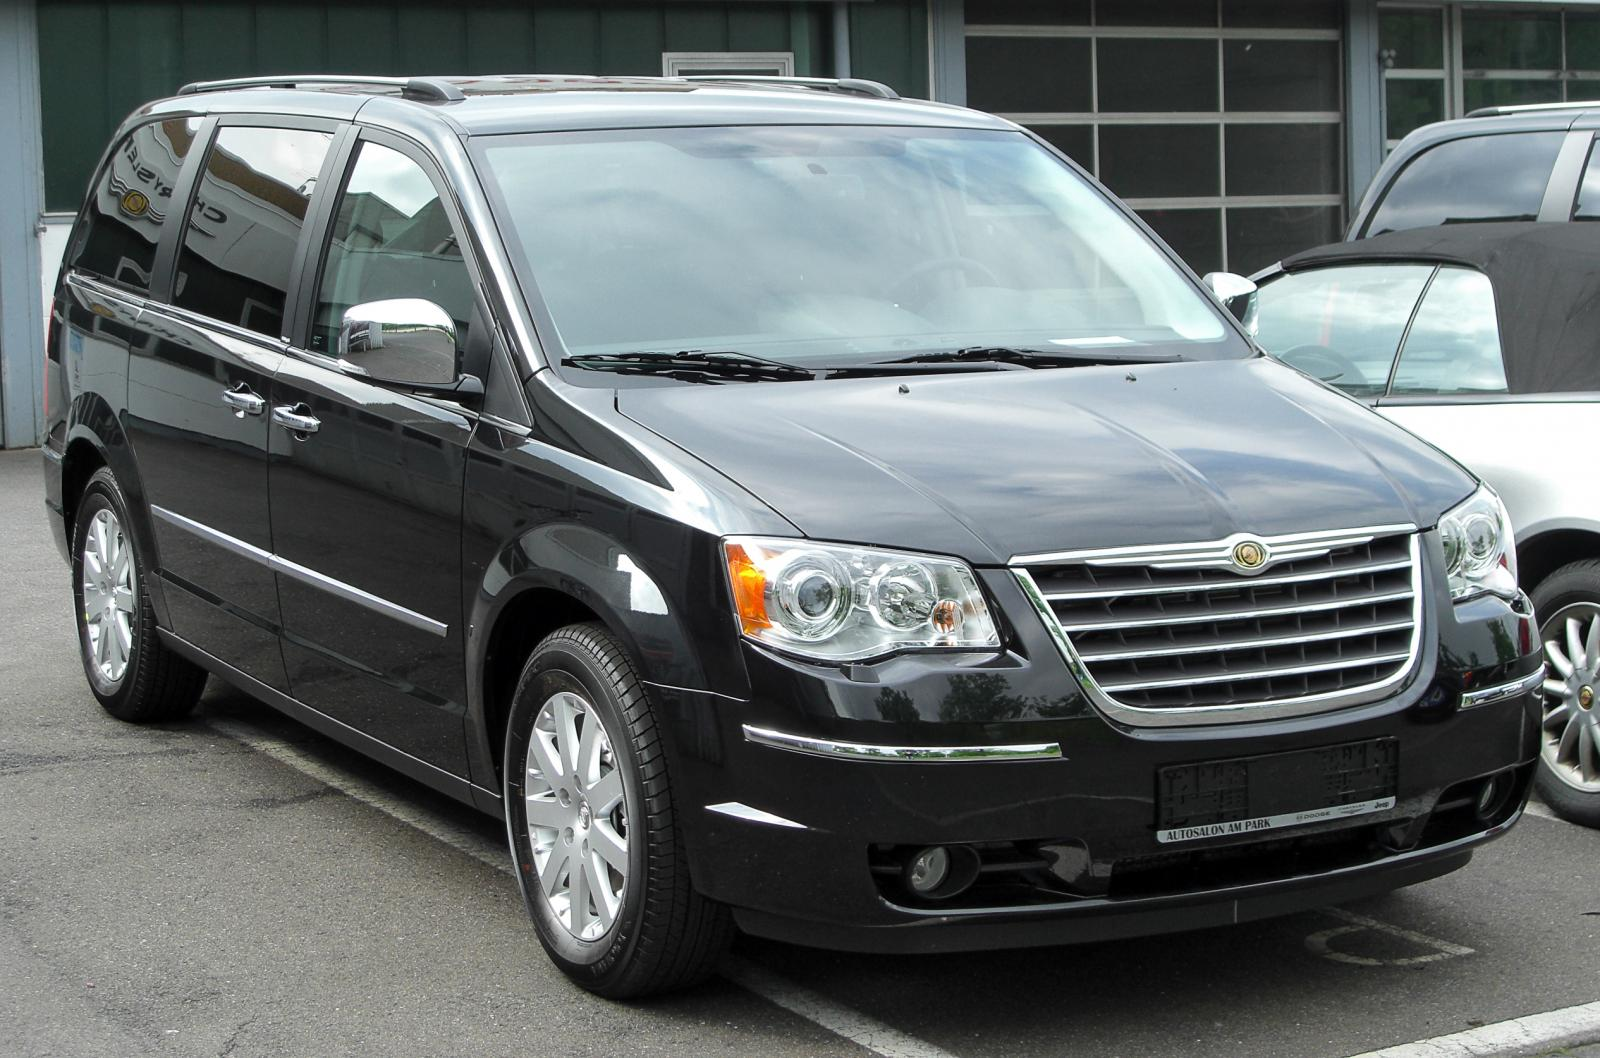 2000 chrysler grand voyager information and photos zombiedrive. Black Bedroom Furniture Sets. Home Design Ideas